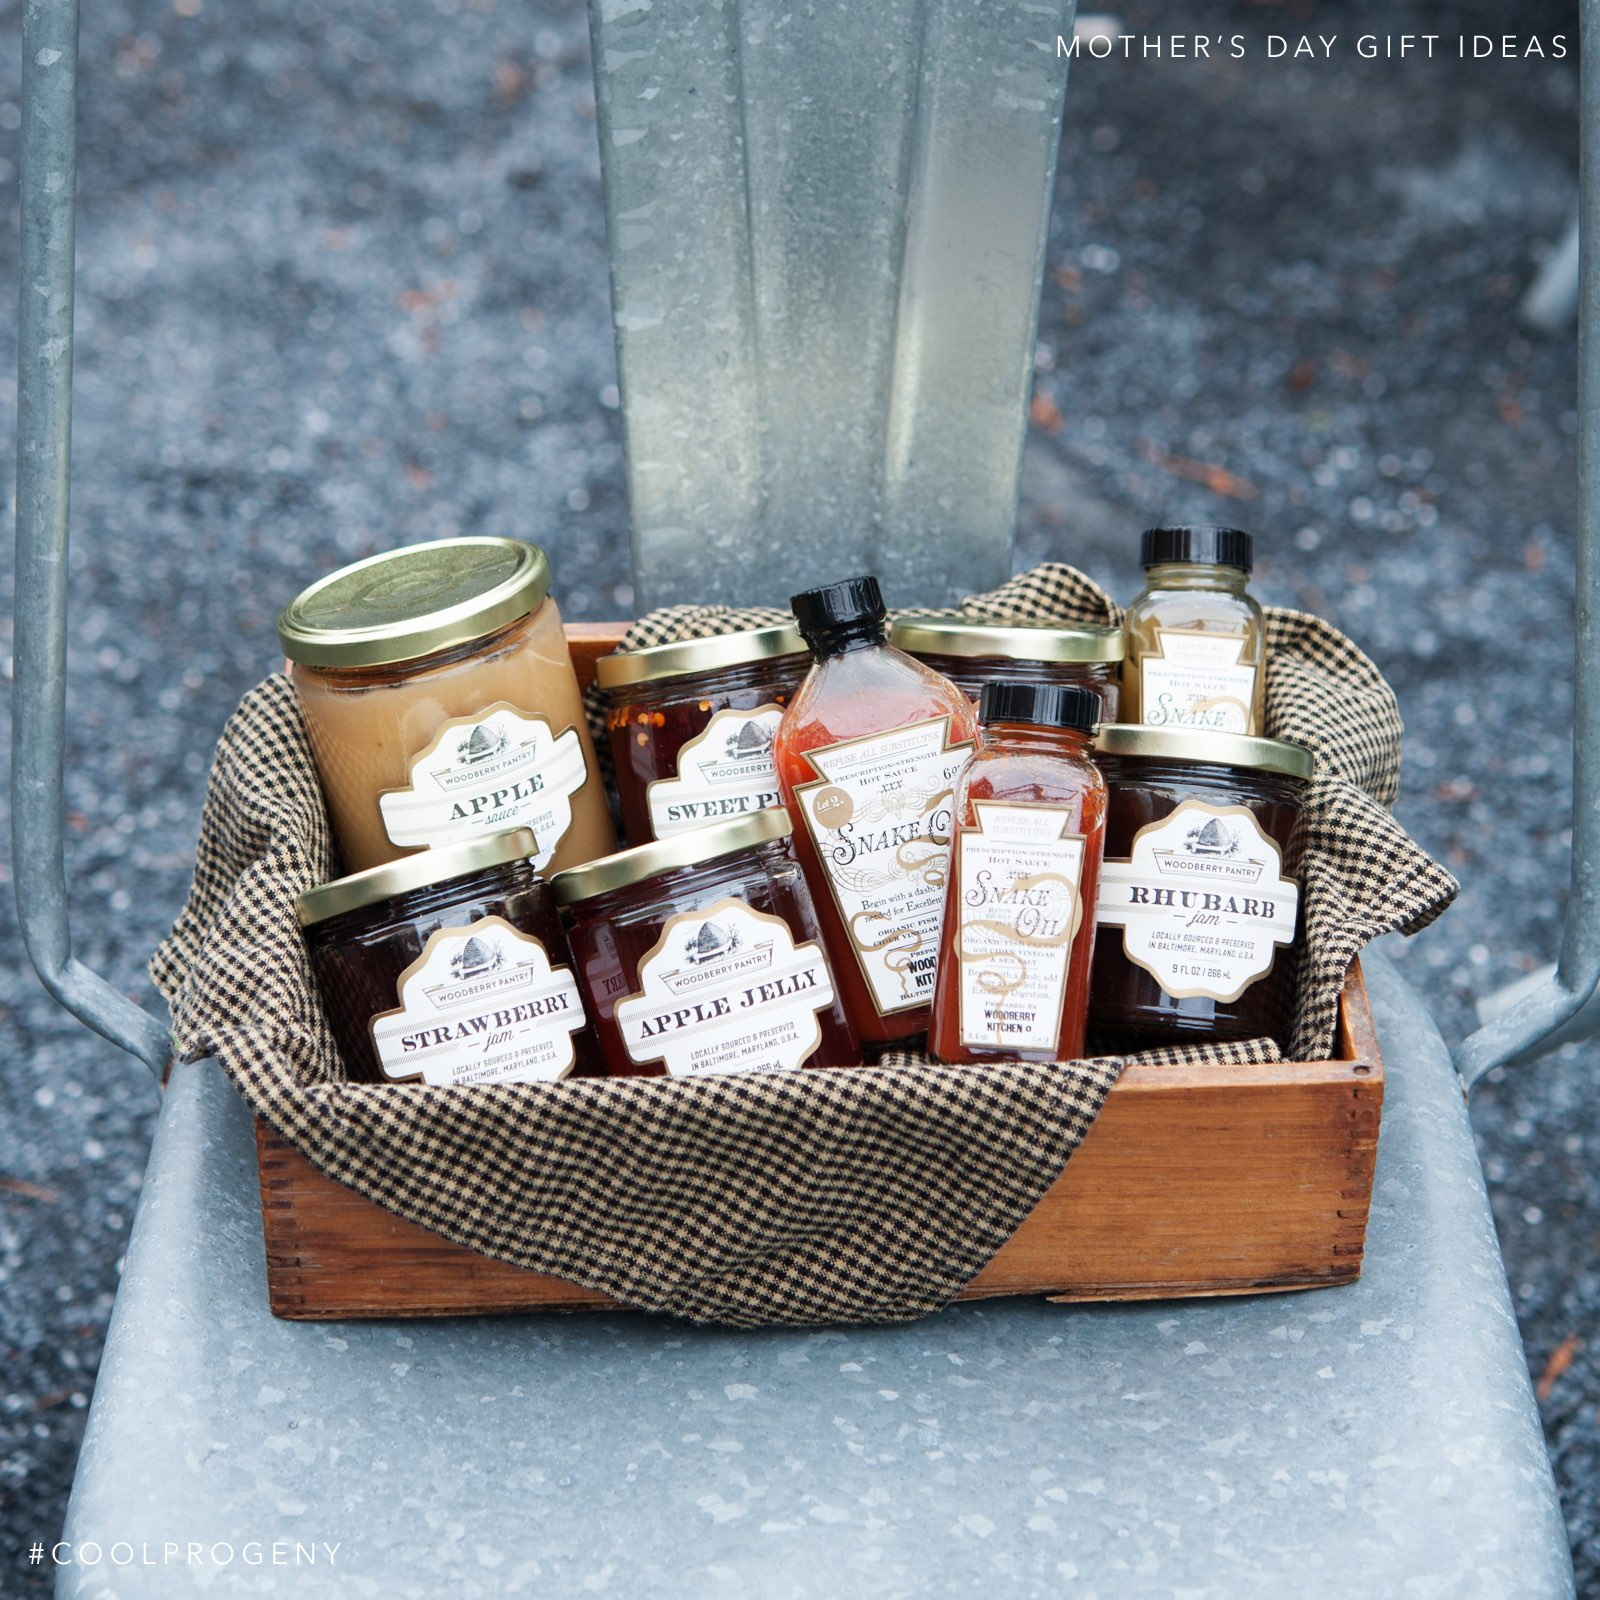 Mother's Day Gift Idea - (cool) progeny - Woodberry Kitchen Jams + Jellies, available at MOMS Organic Markets and Parts & Labor